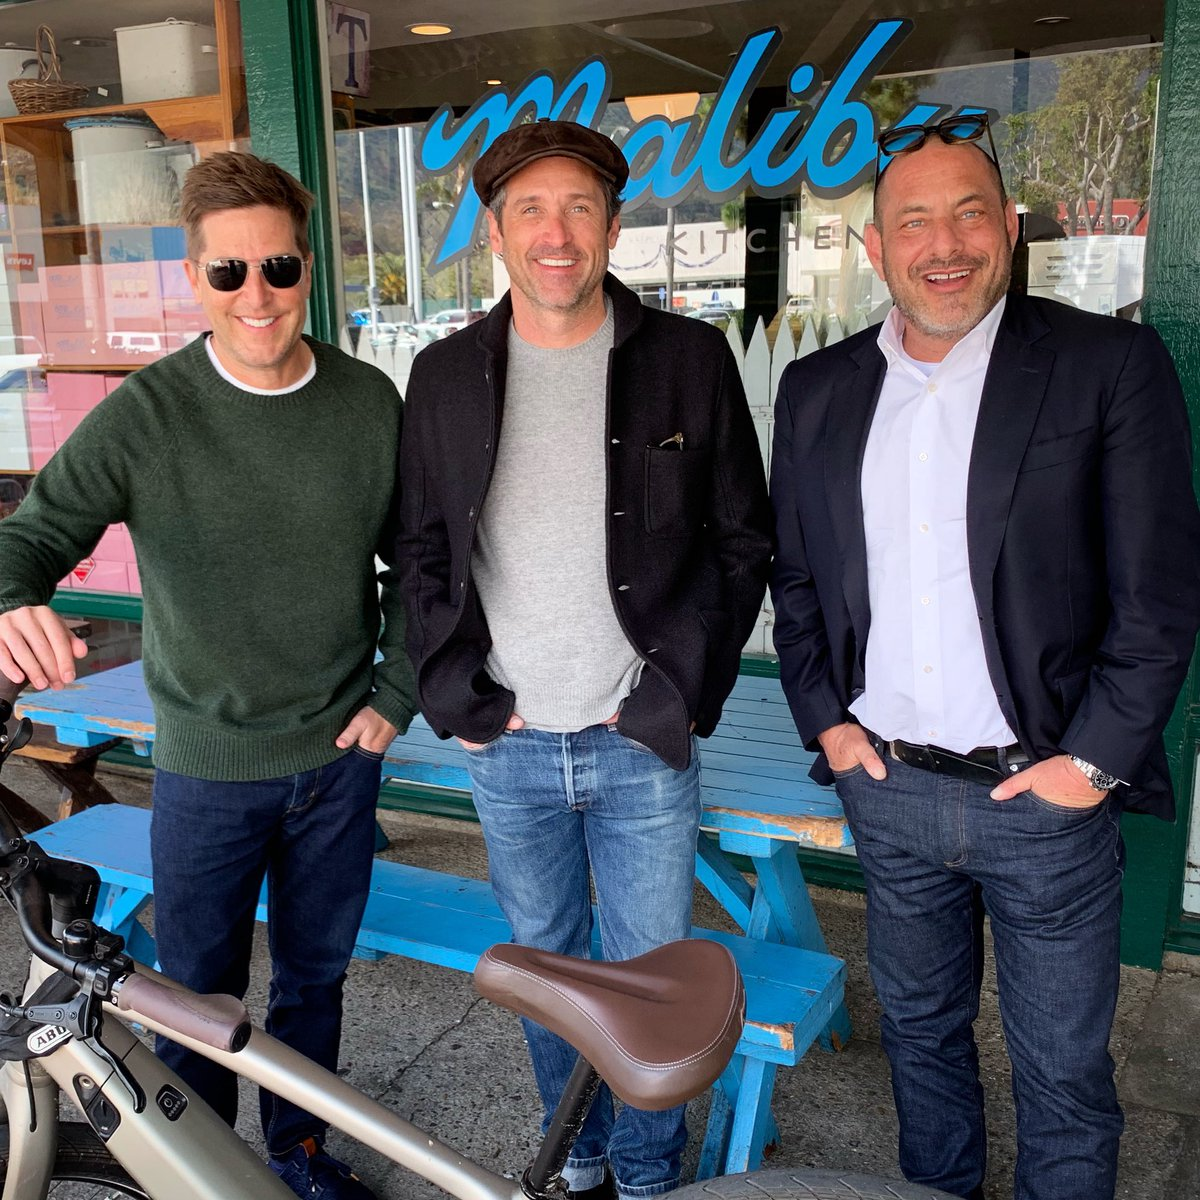 """Actor Patrick Dempsey hangs out with Spike and Z on the porch in Malibu to talk about his new documentary, """"Hurley"""", about racing legend Hurley Haywood.  #scr"""